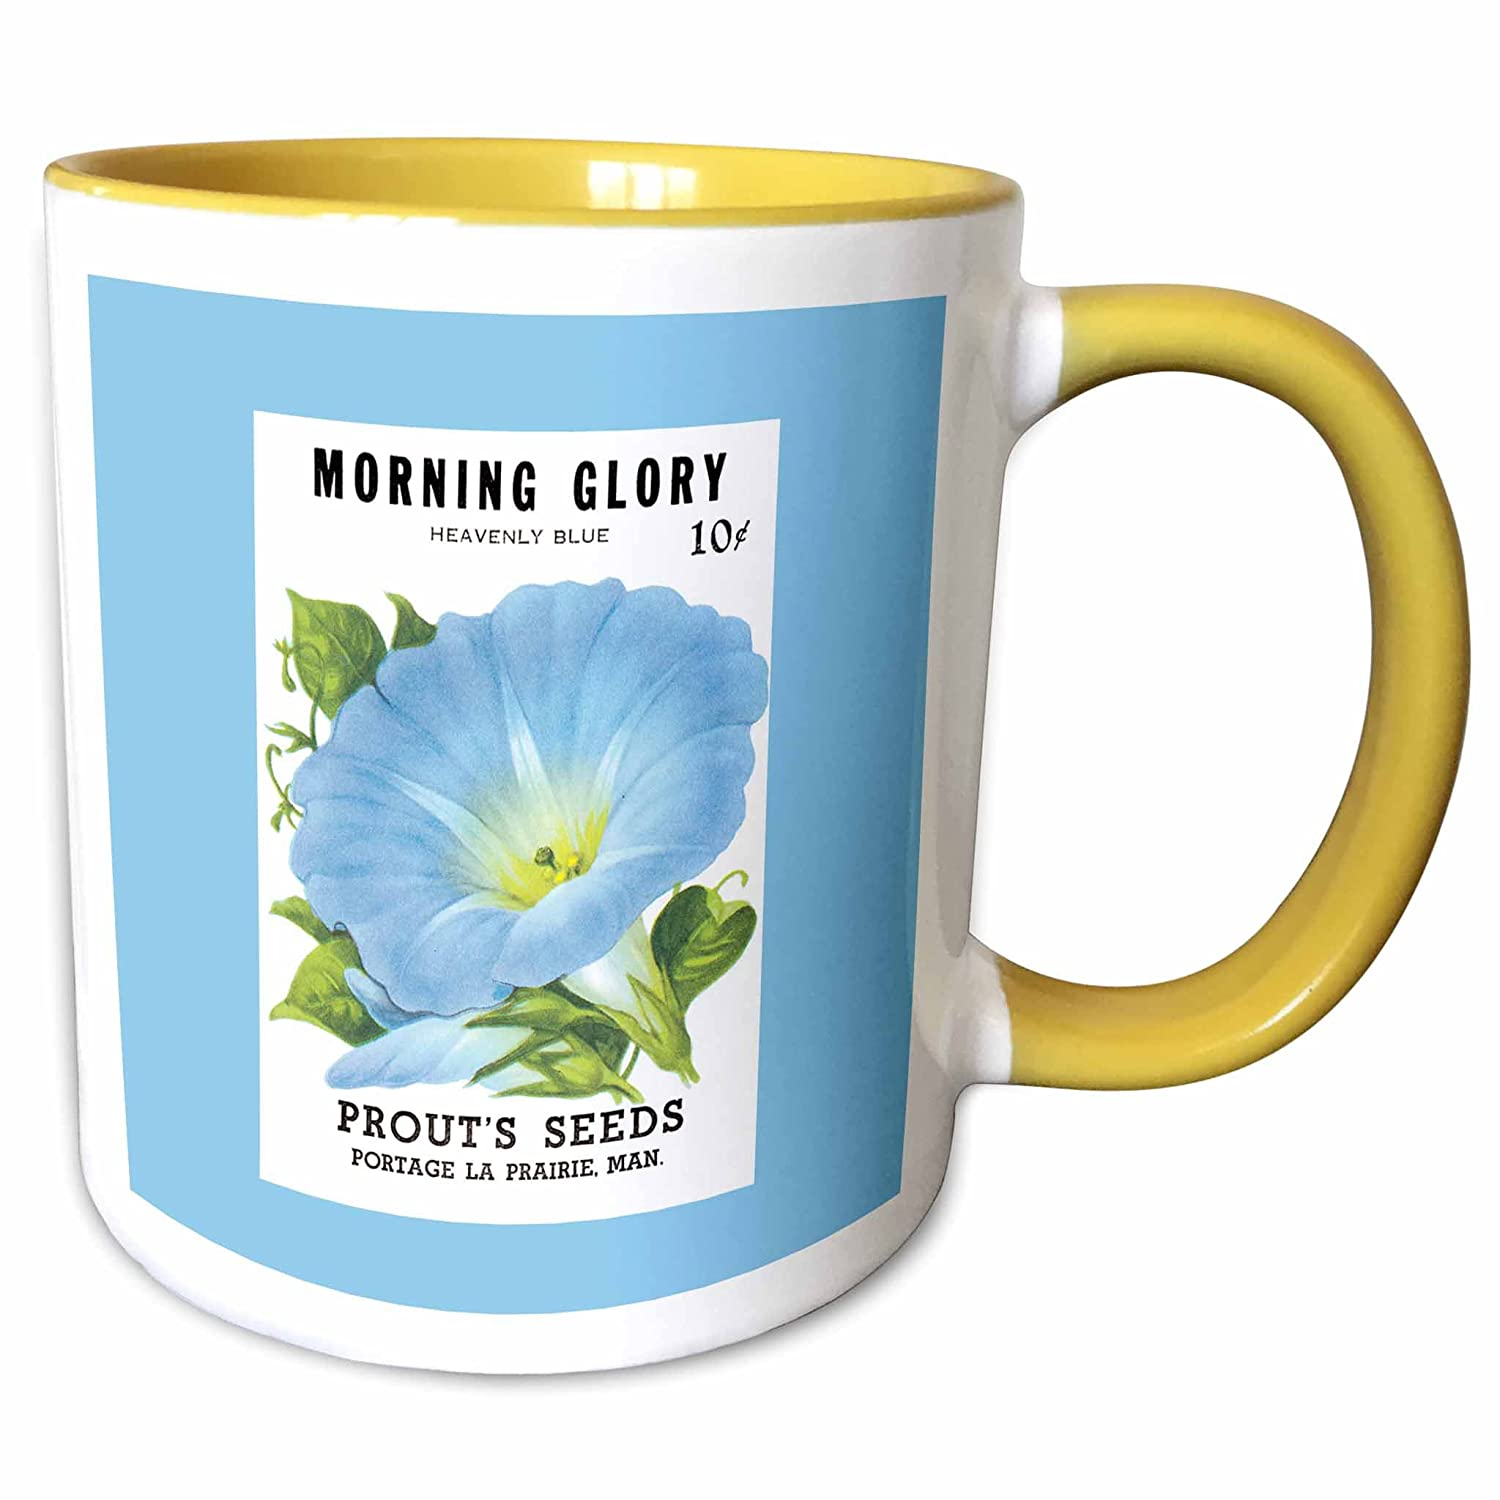 Amazon 3drose Morning Glory Heavenly Blue Prouts Seeds Portage